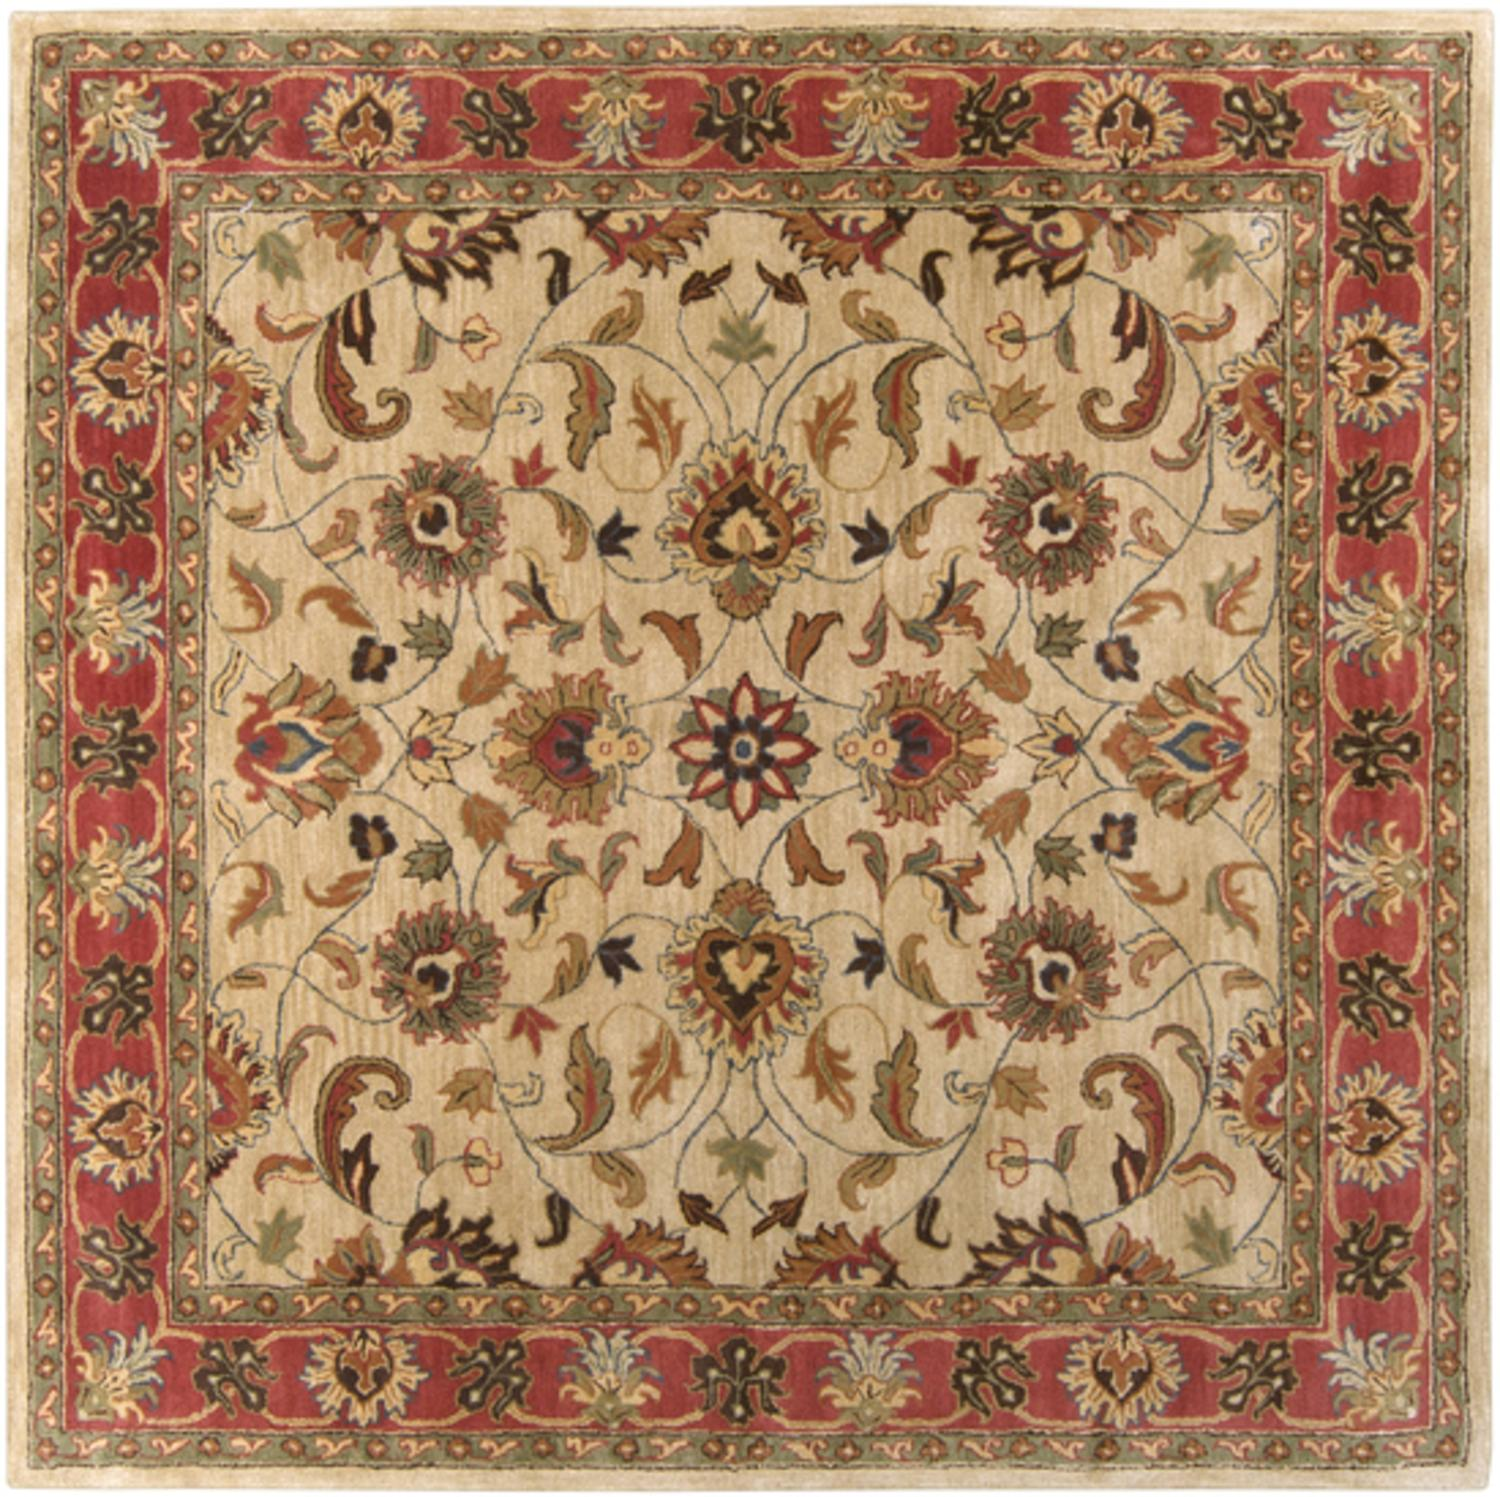 4' x 4' Augustus Russet and Burnt Sienna Hand Tufted Square Wool Area Throw Rug